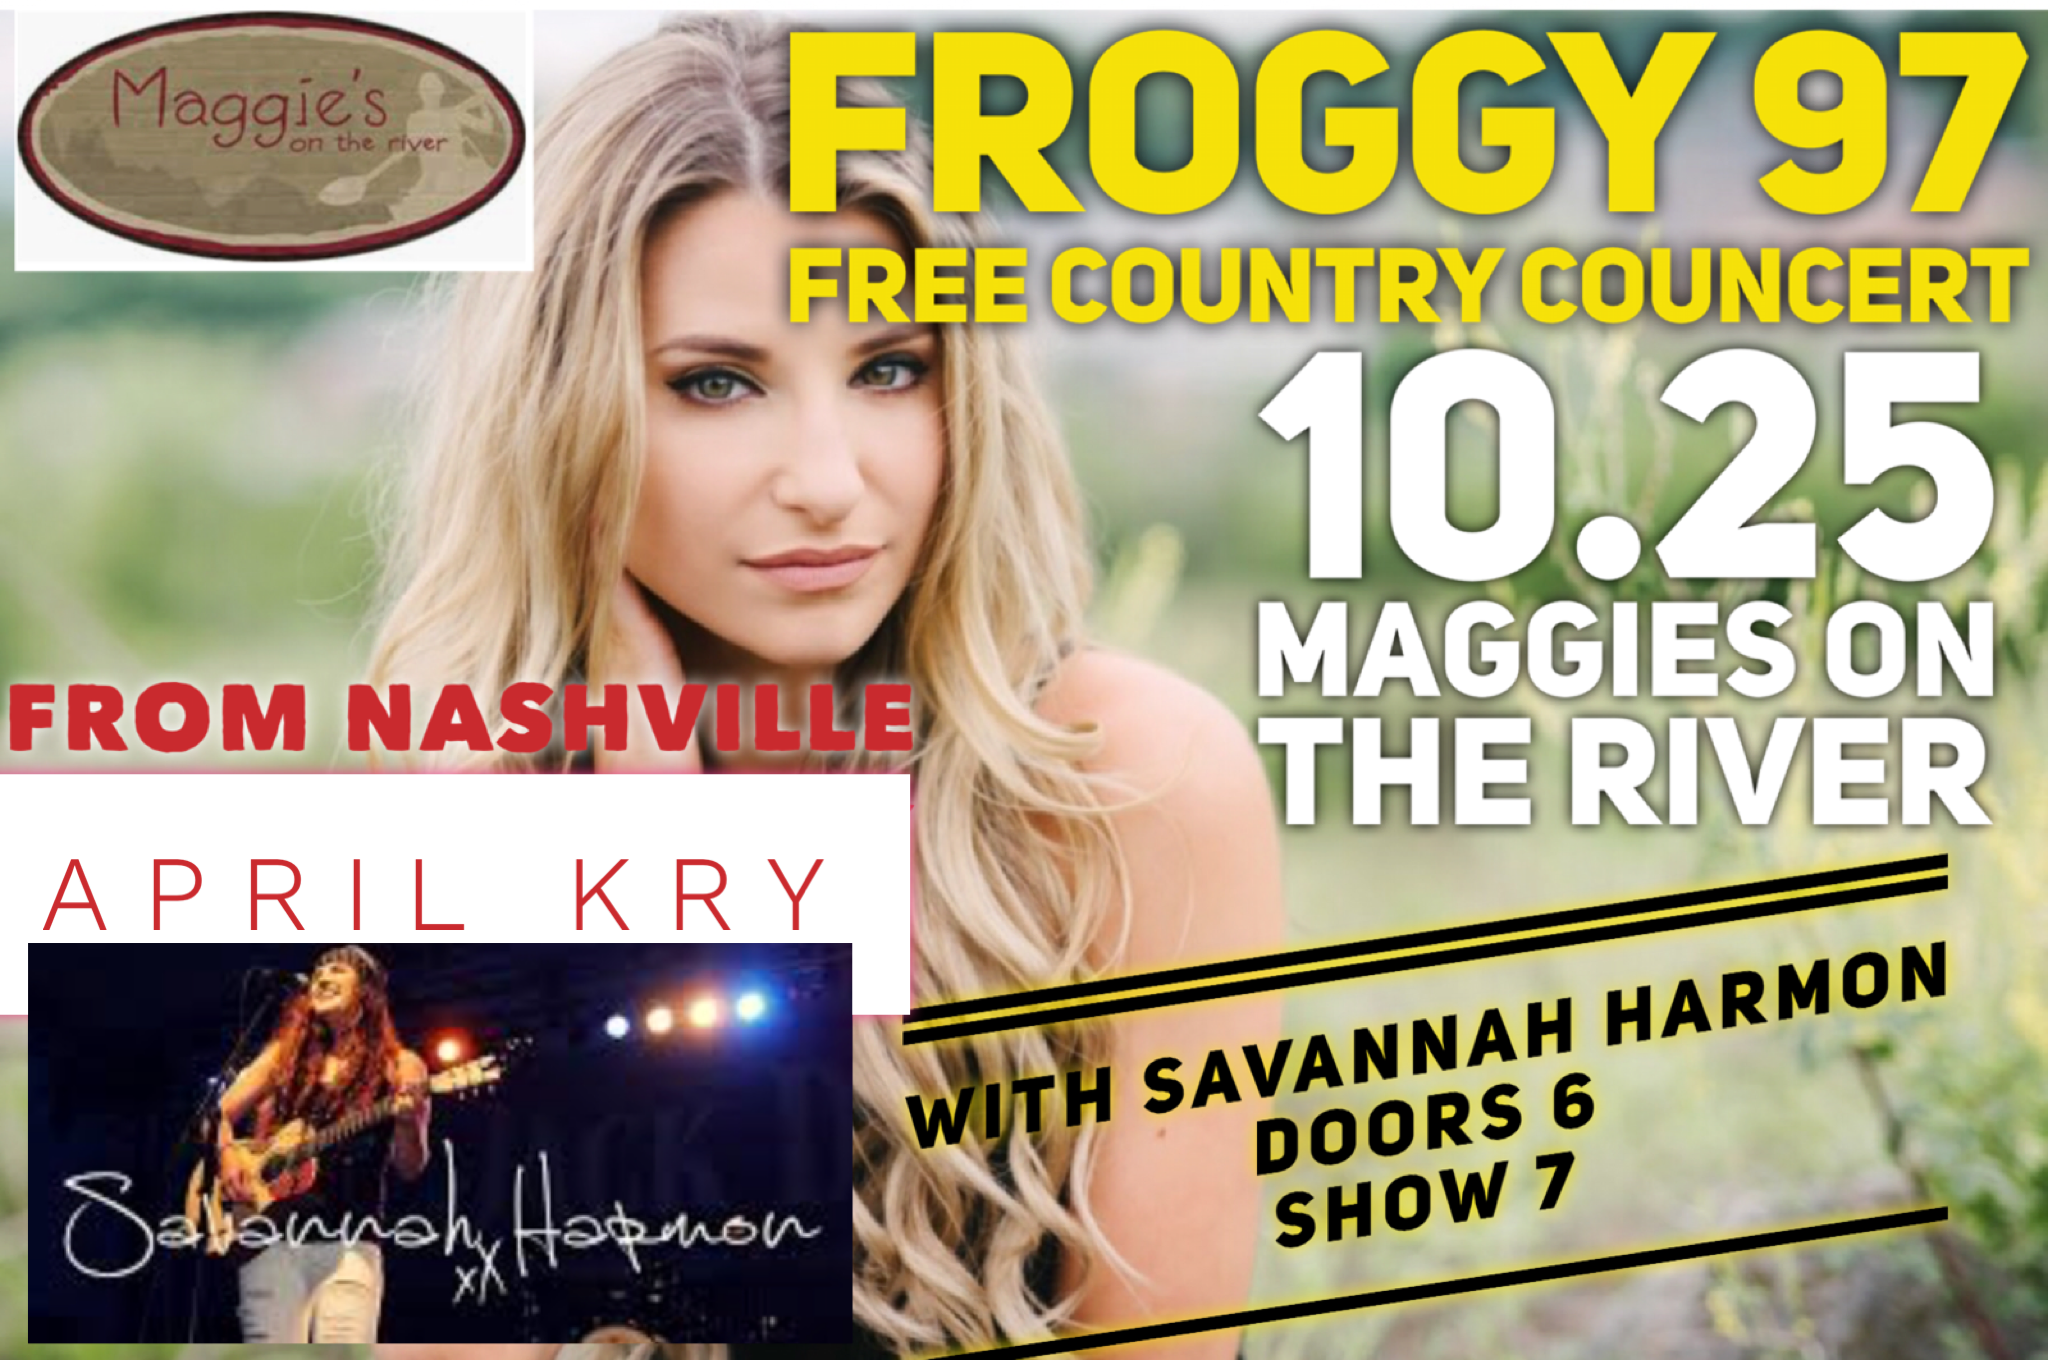 FREE COUNTRY CONCERT AT MAGGIES ON THE RIVER